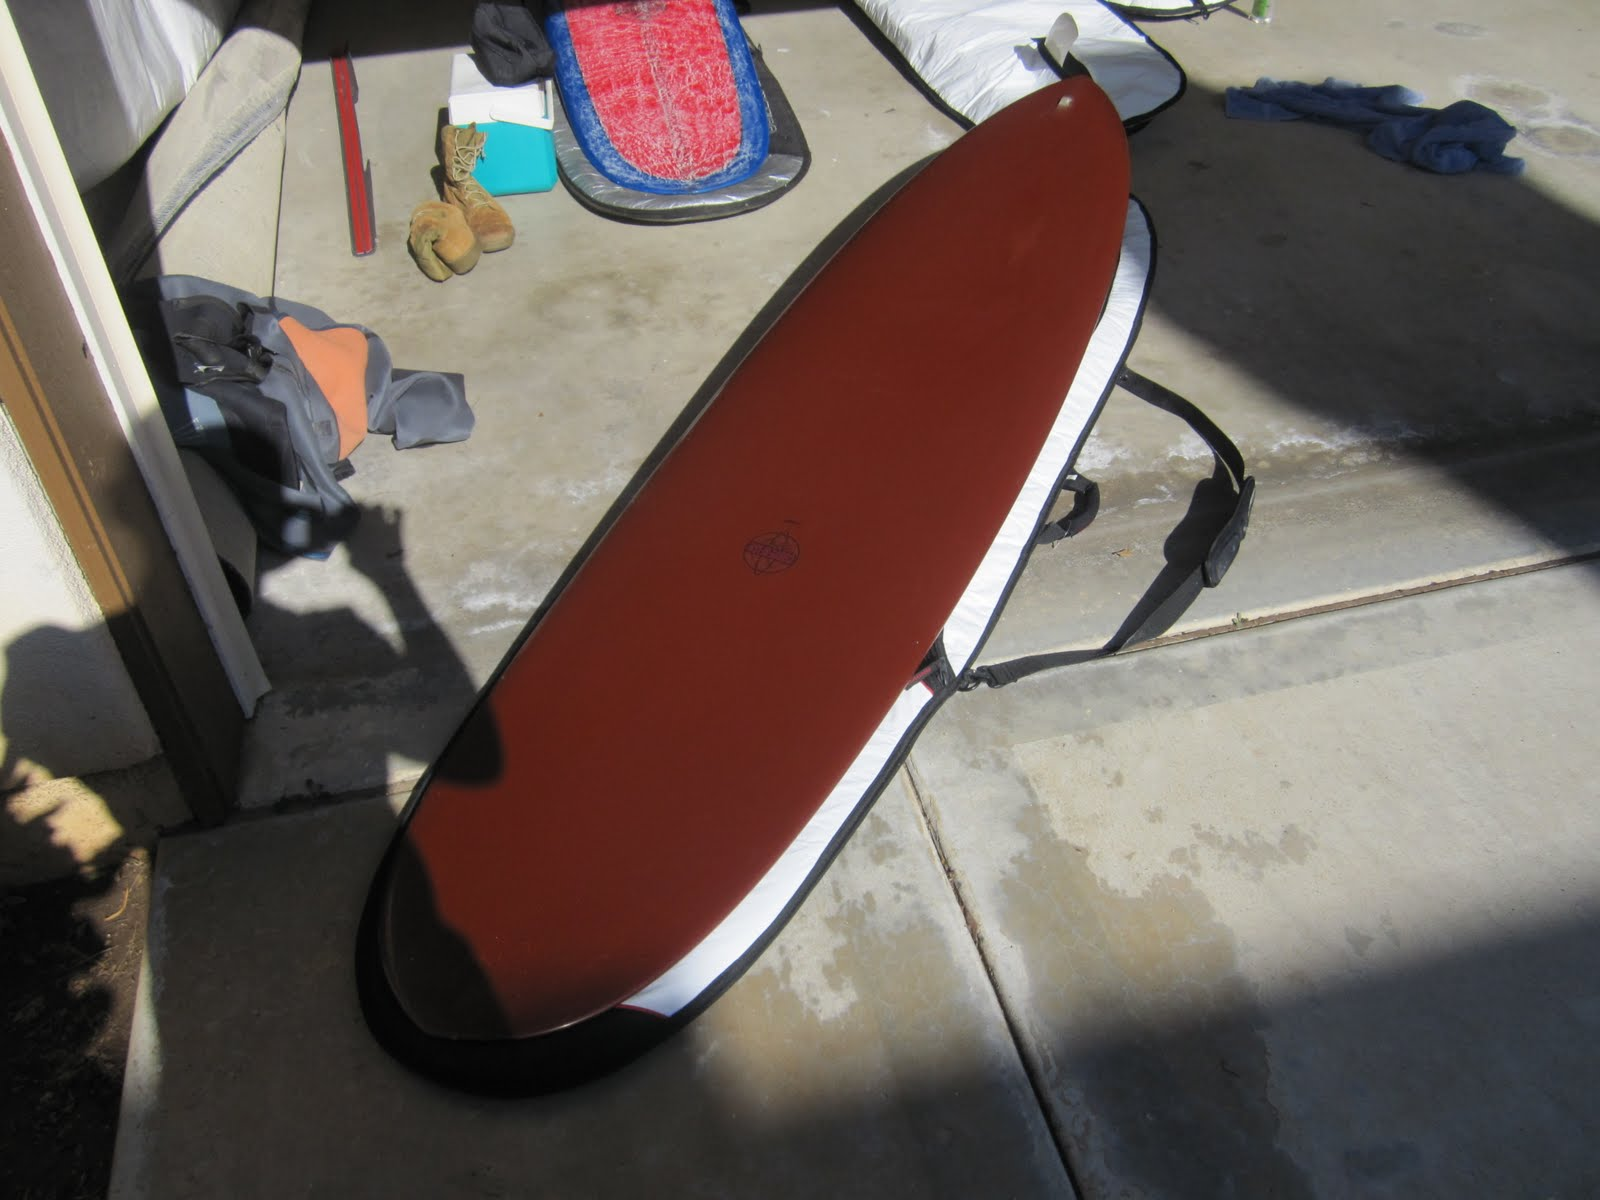 Surfboards for sale cooperfish comet for sale in for Fish surfboard for sale